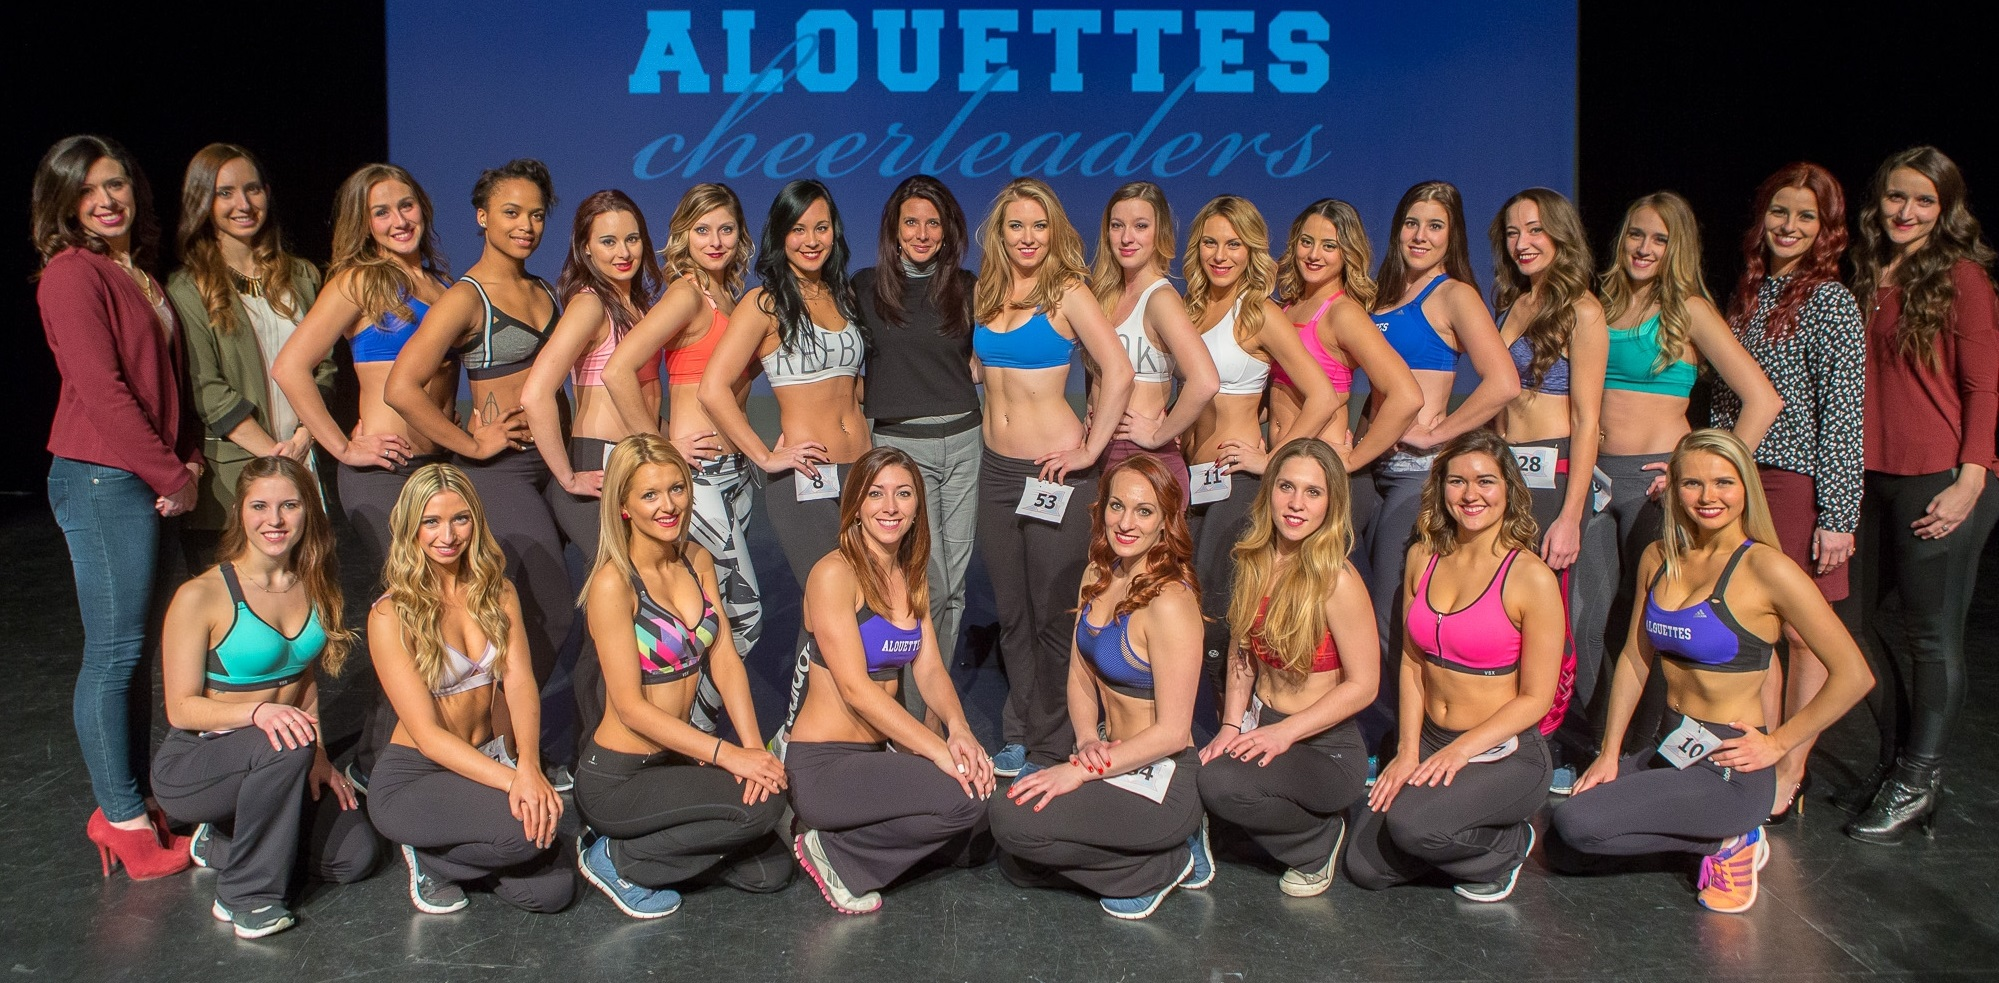 2016 Alouettes Cheerleaders Montreal Alouettes